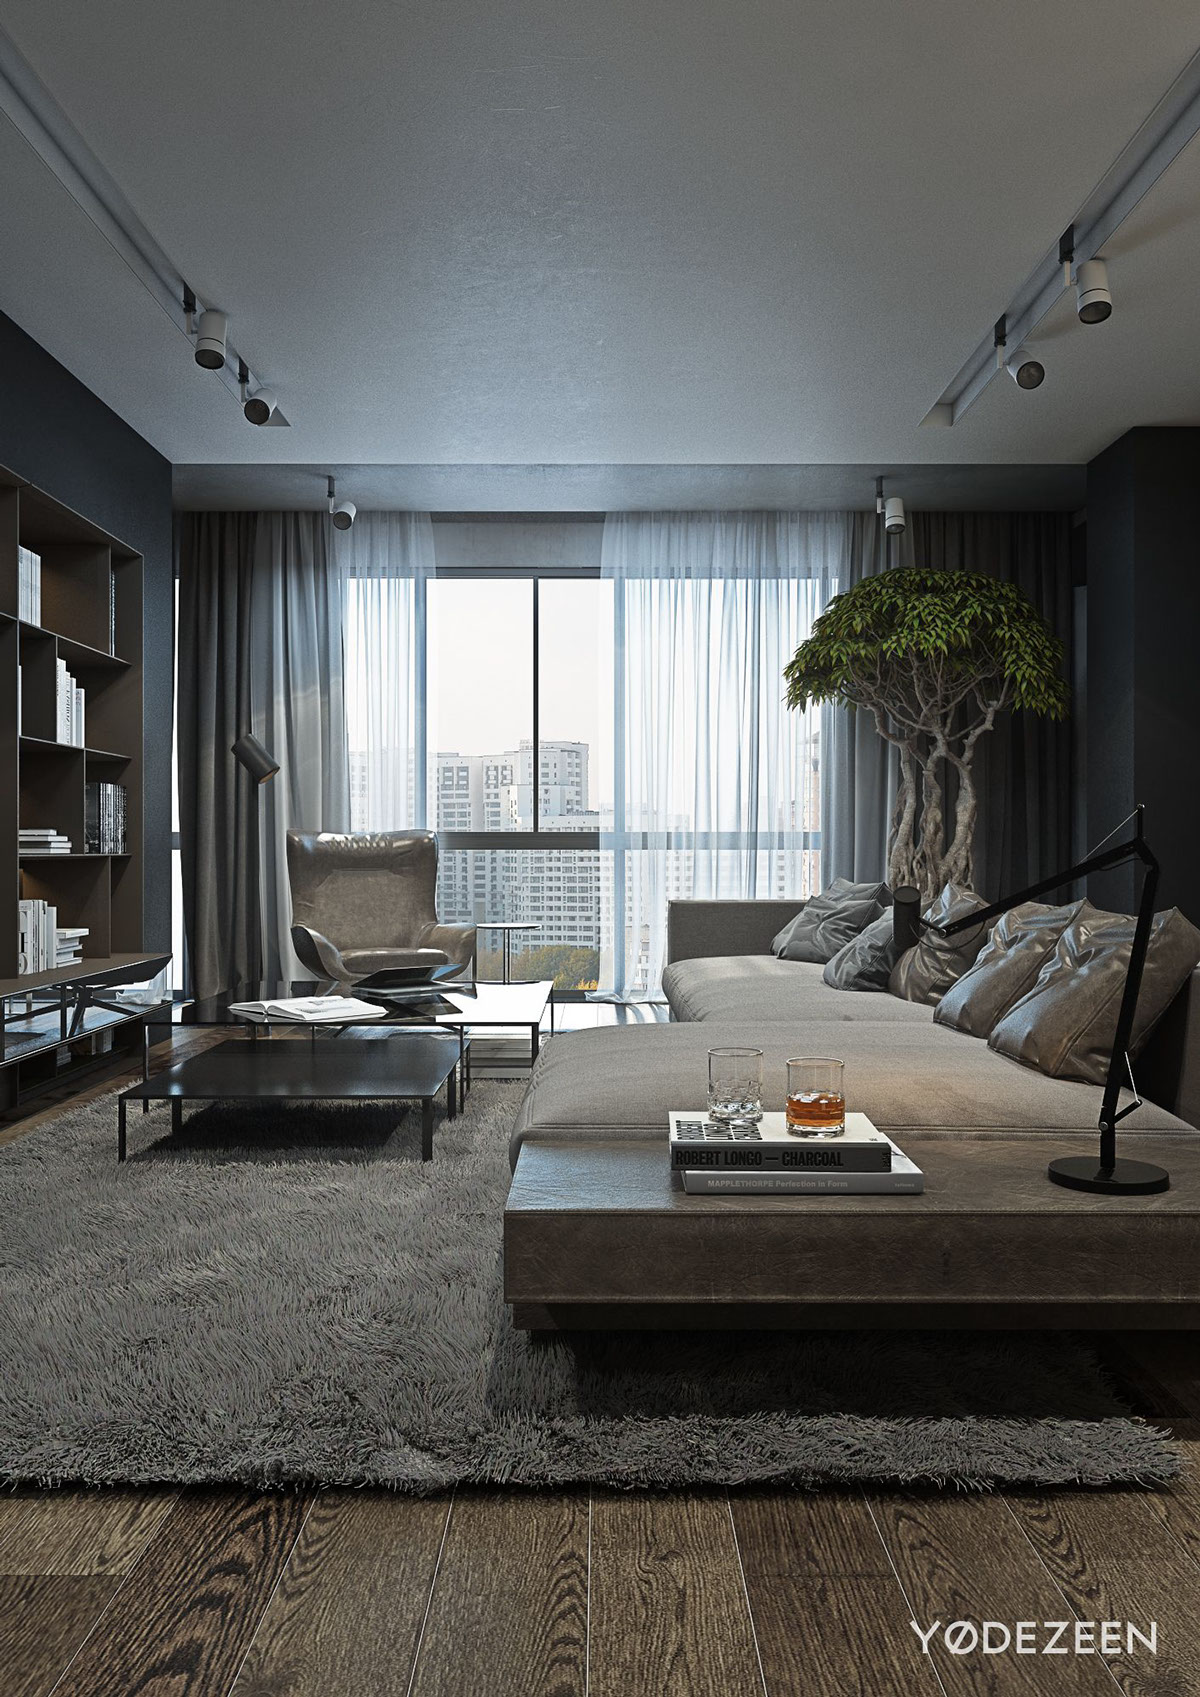 Bachelor Pad Interior Design A Dark And Calming Bachelor Bad With Natural Wood And Concrete